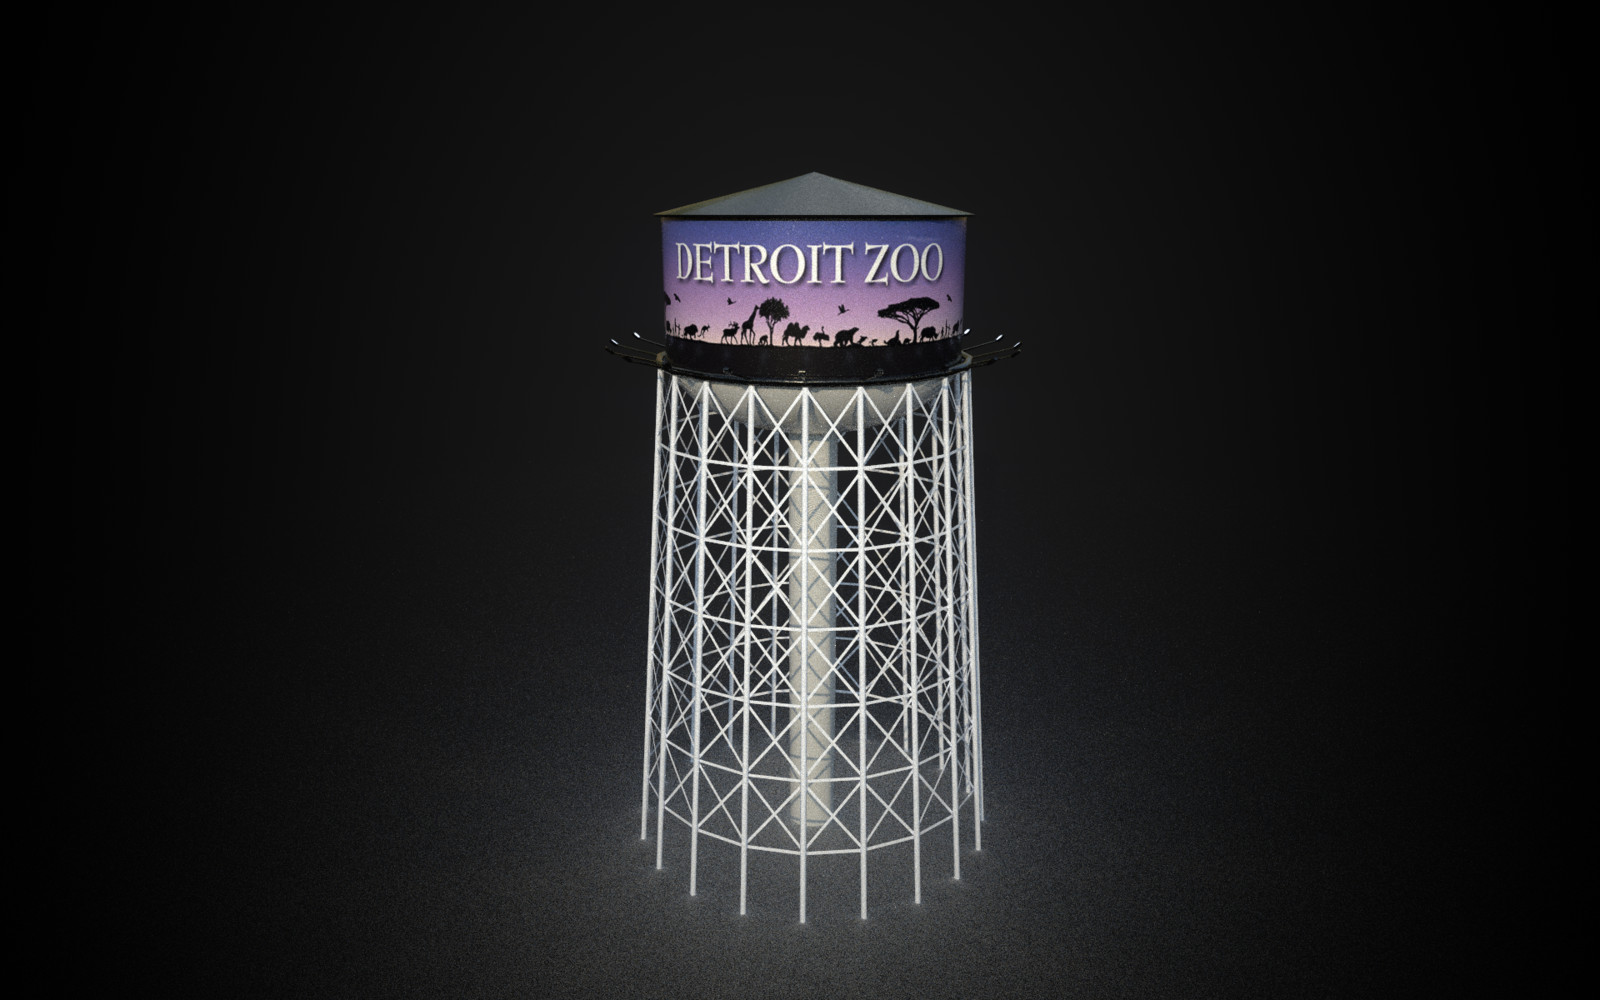 Water Tower with Detroit Zoo graphic